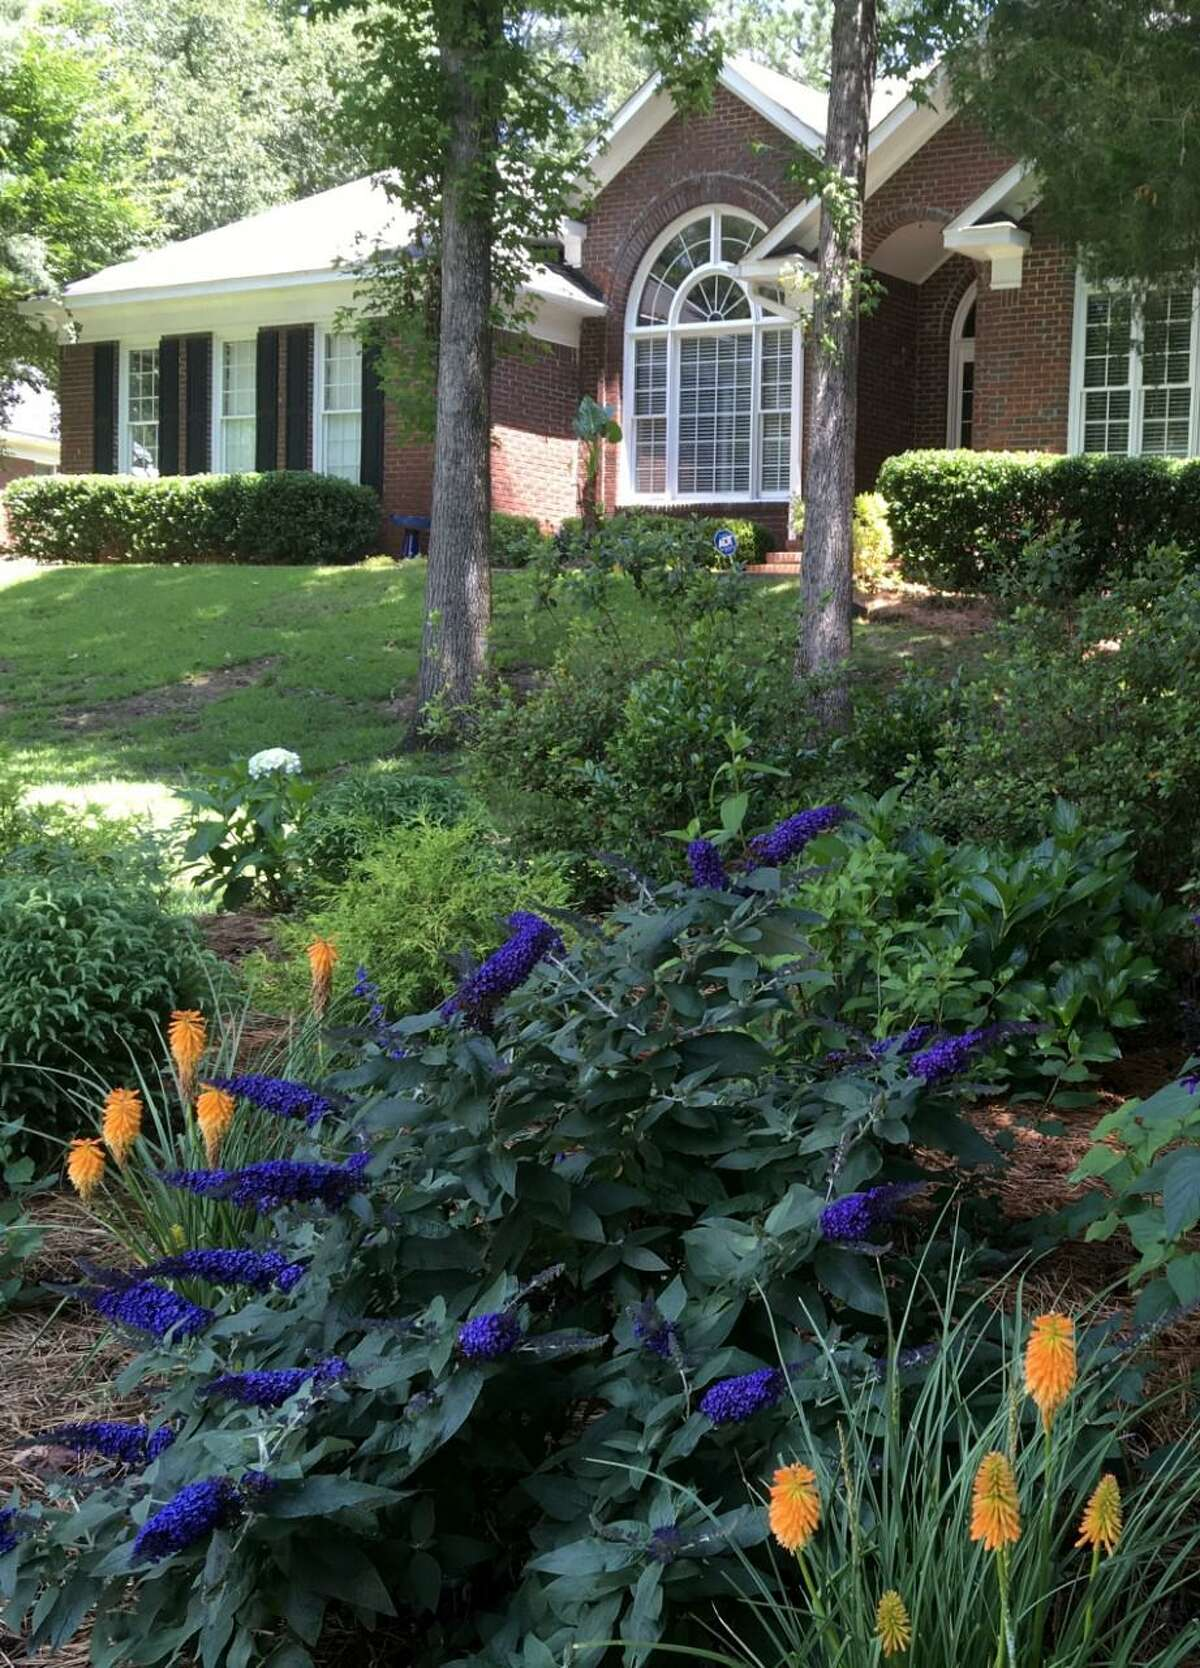 'Pugster Blue' butterfly bush is is partnered with 'Pyromania Orange Blaze' torch lilies in a curbside garden.